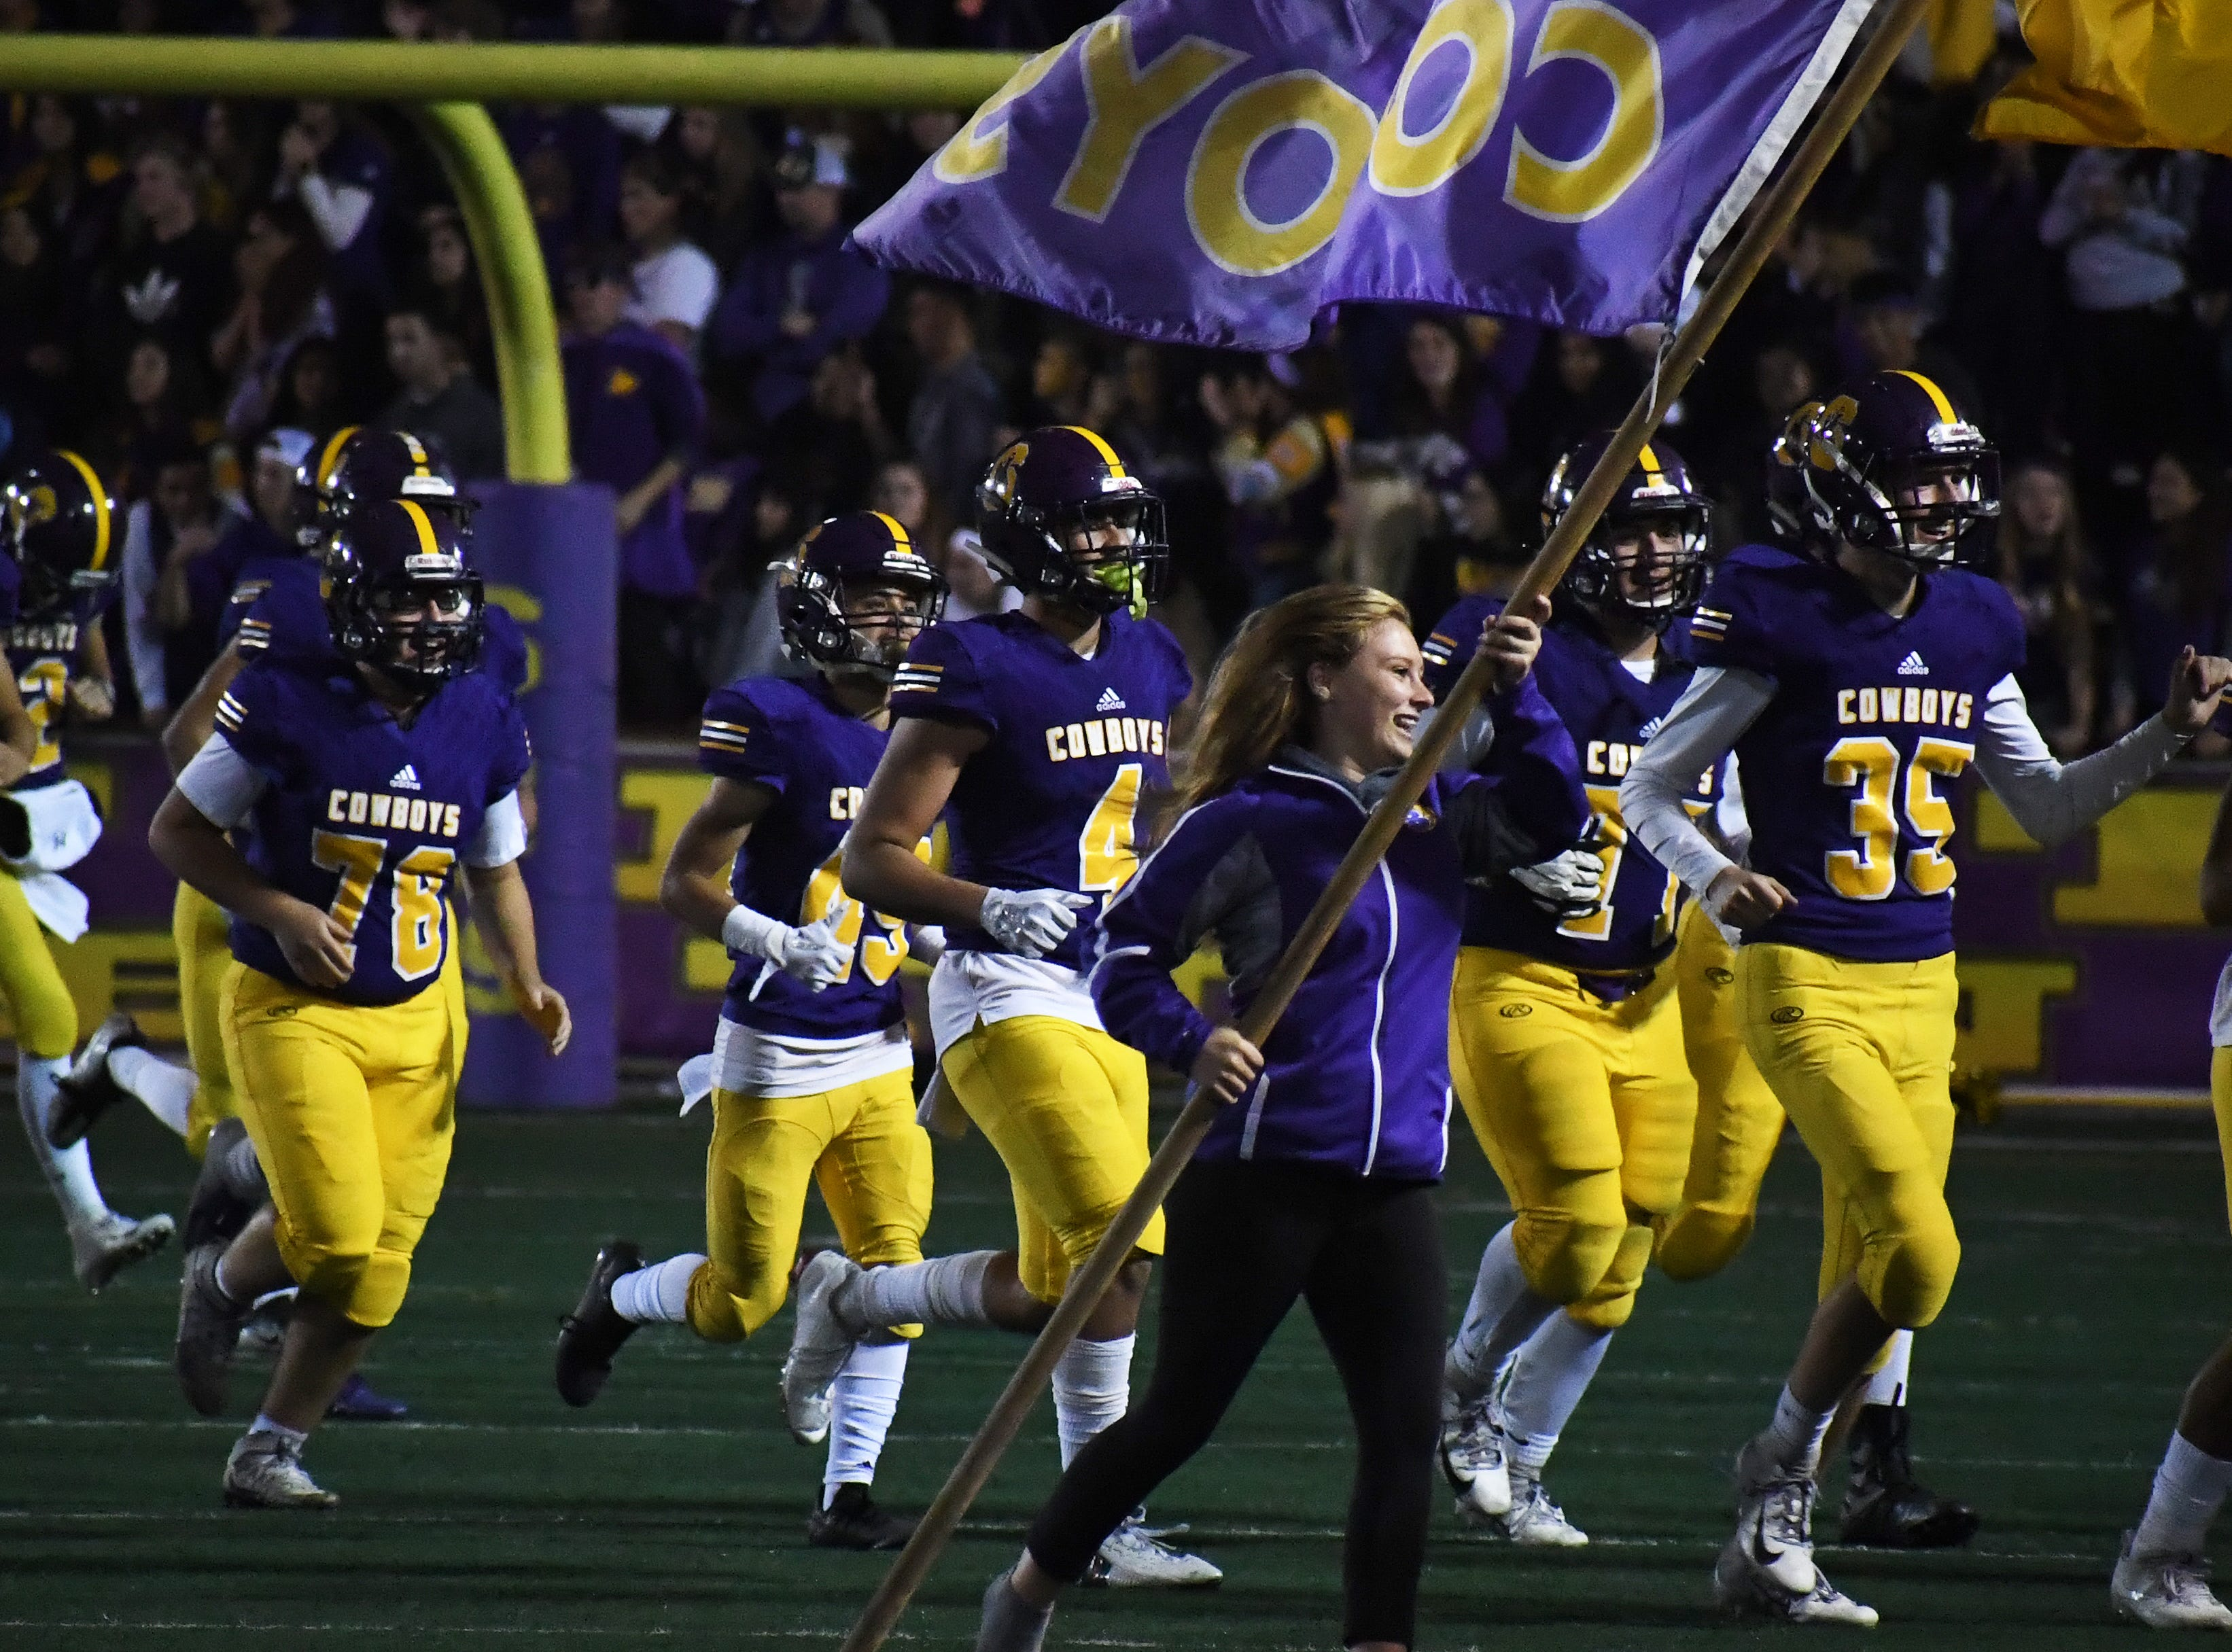 The Salinas Cowboys return to the field after halftime.